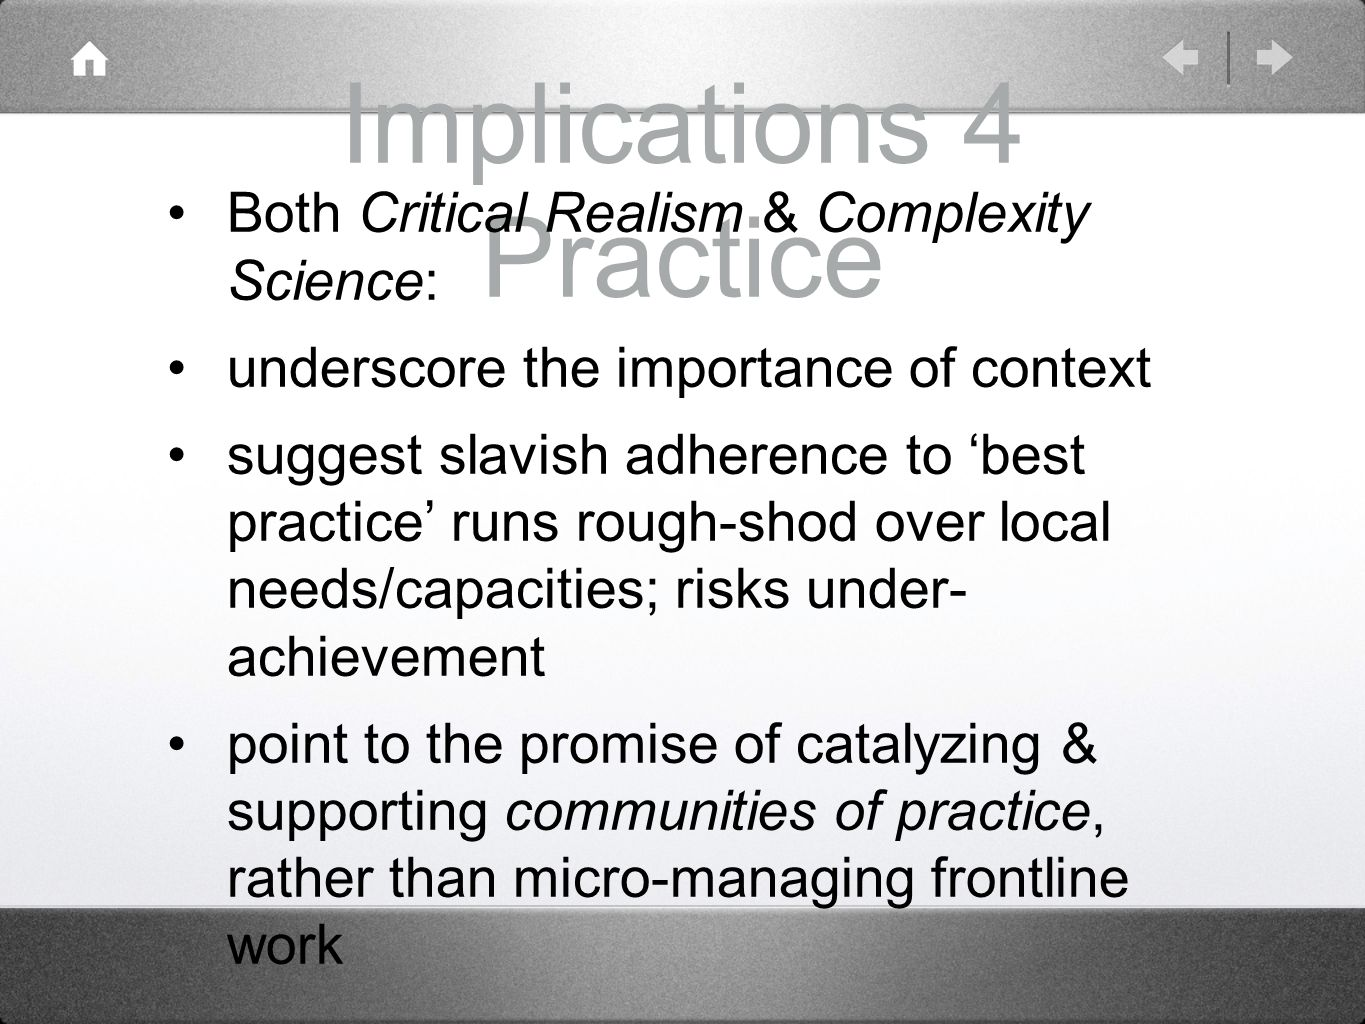 Implications 4 Practice Both Critical Realism & Complexity Science: underscore the importance of context suggest slavish adherence to best practice runs rough-shod over local needs/capacities; risks under- achievement point to the promise of catalyzing & supporting communities of practice, rather than micro-managing frontline work